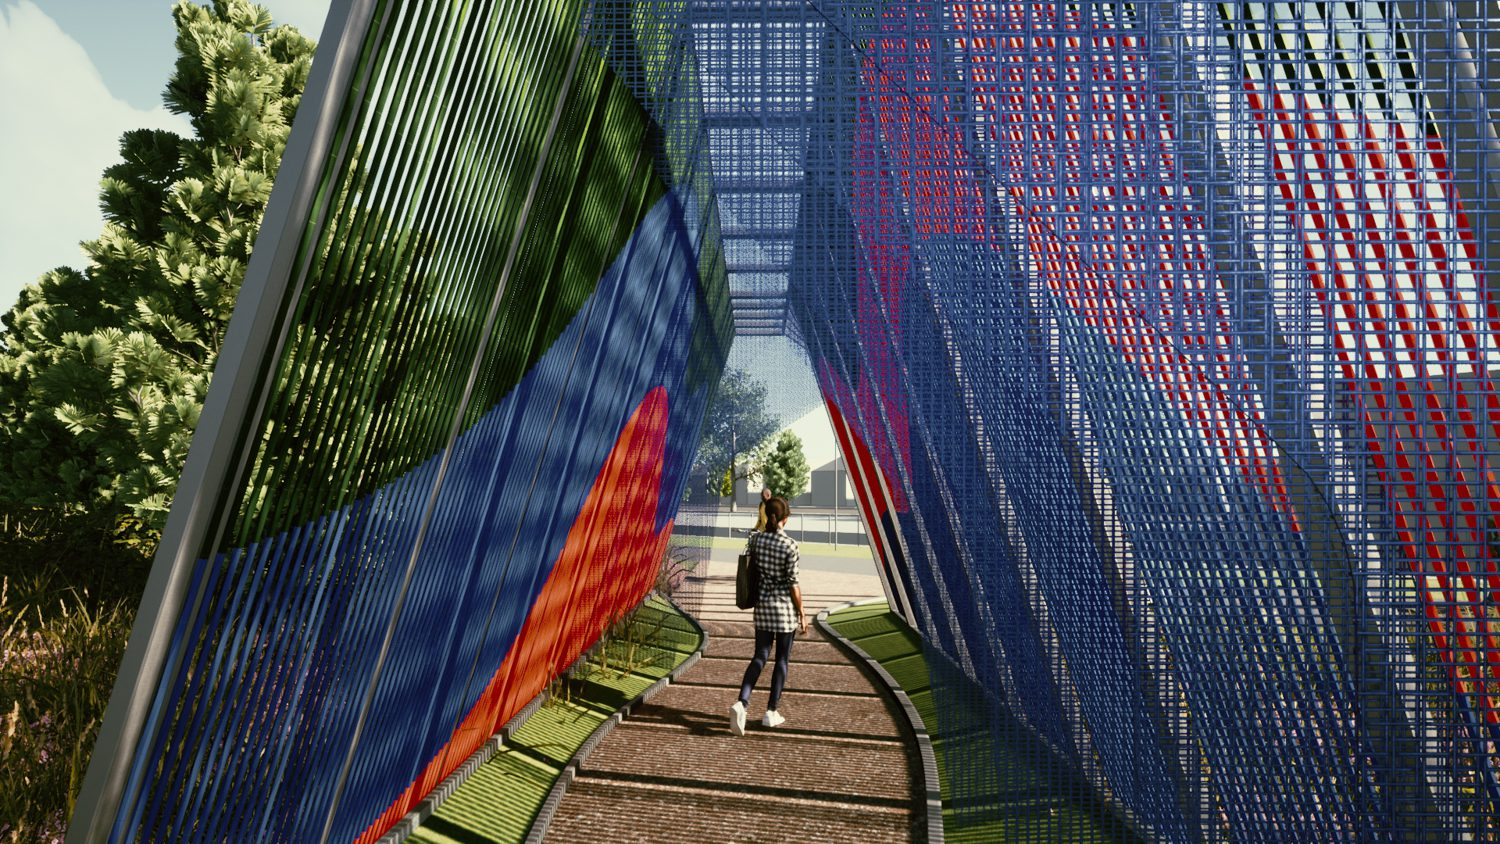 A woman stands beneath a blue and red woven tunnel that serves as a public art installation.